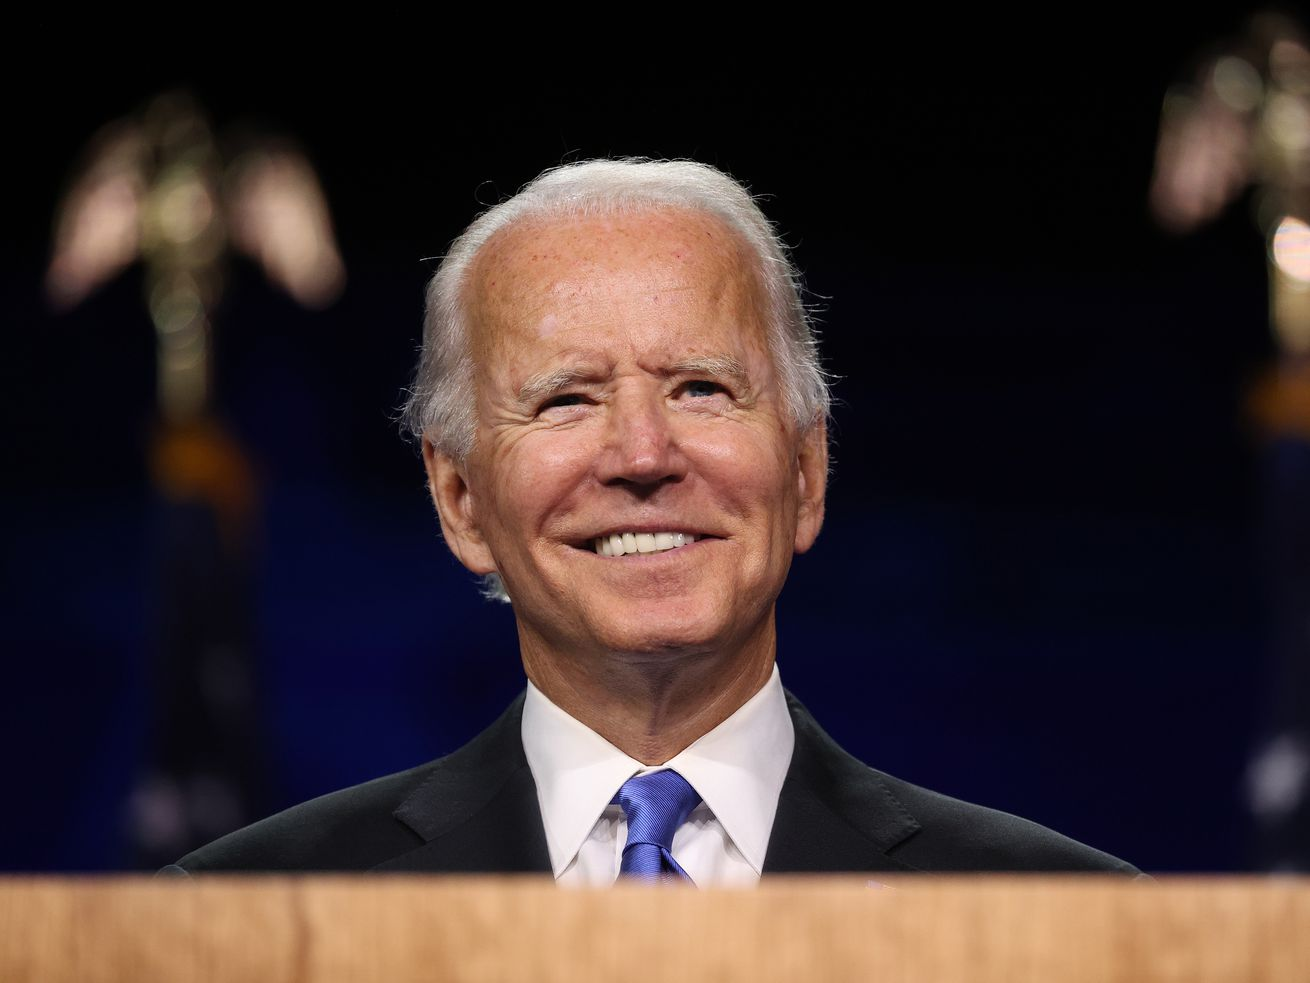 Then-candidate Joe Biden at the Democratic National Convention on August 20, 2020.